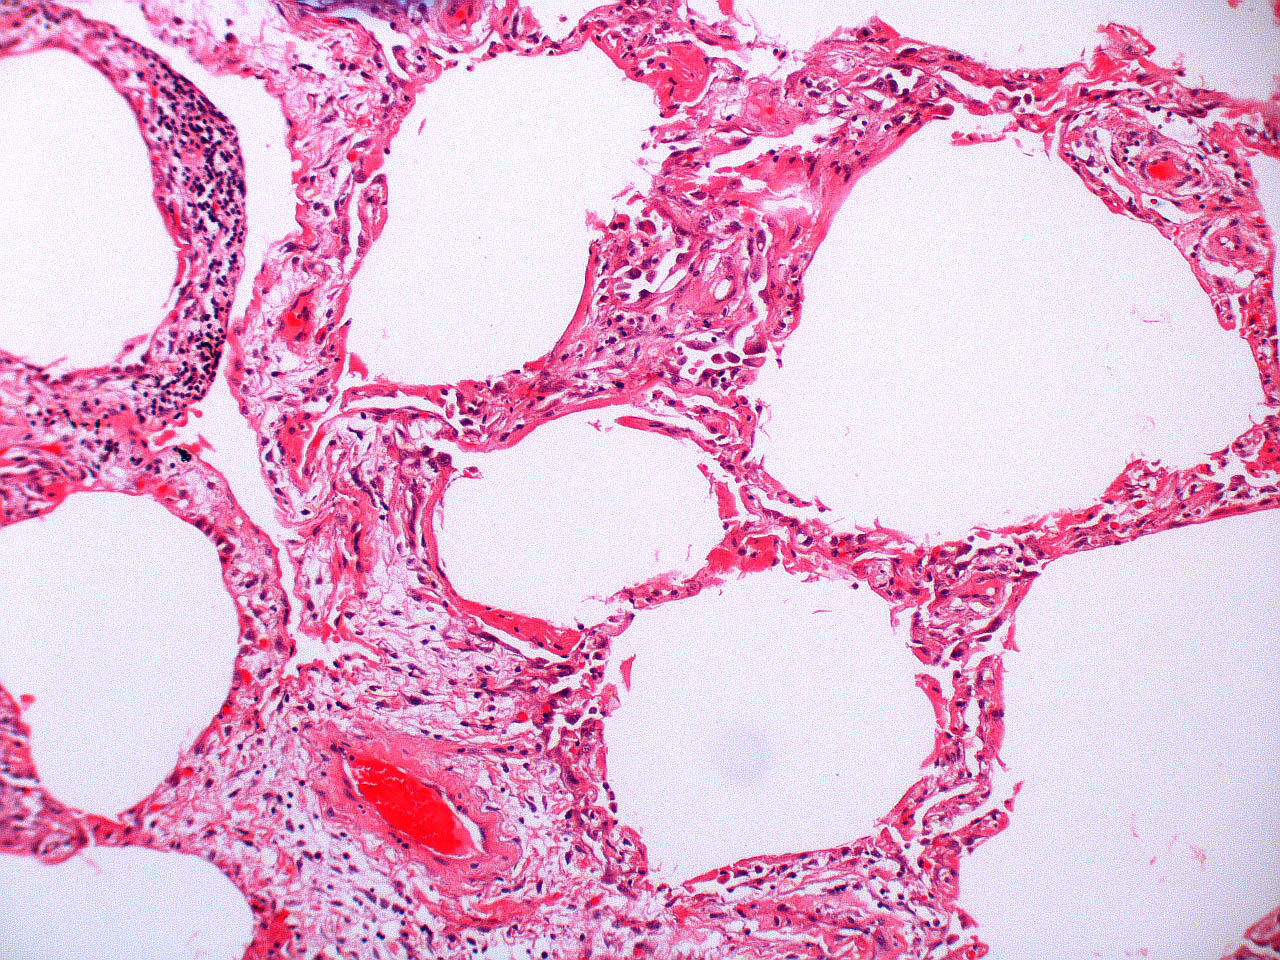 Fibroblastic proliferation with remnants of hyaline membrane